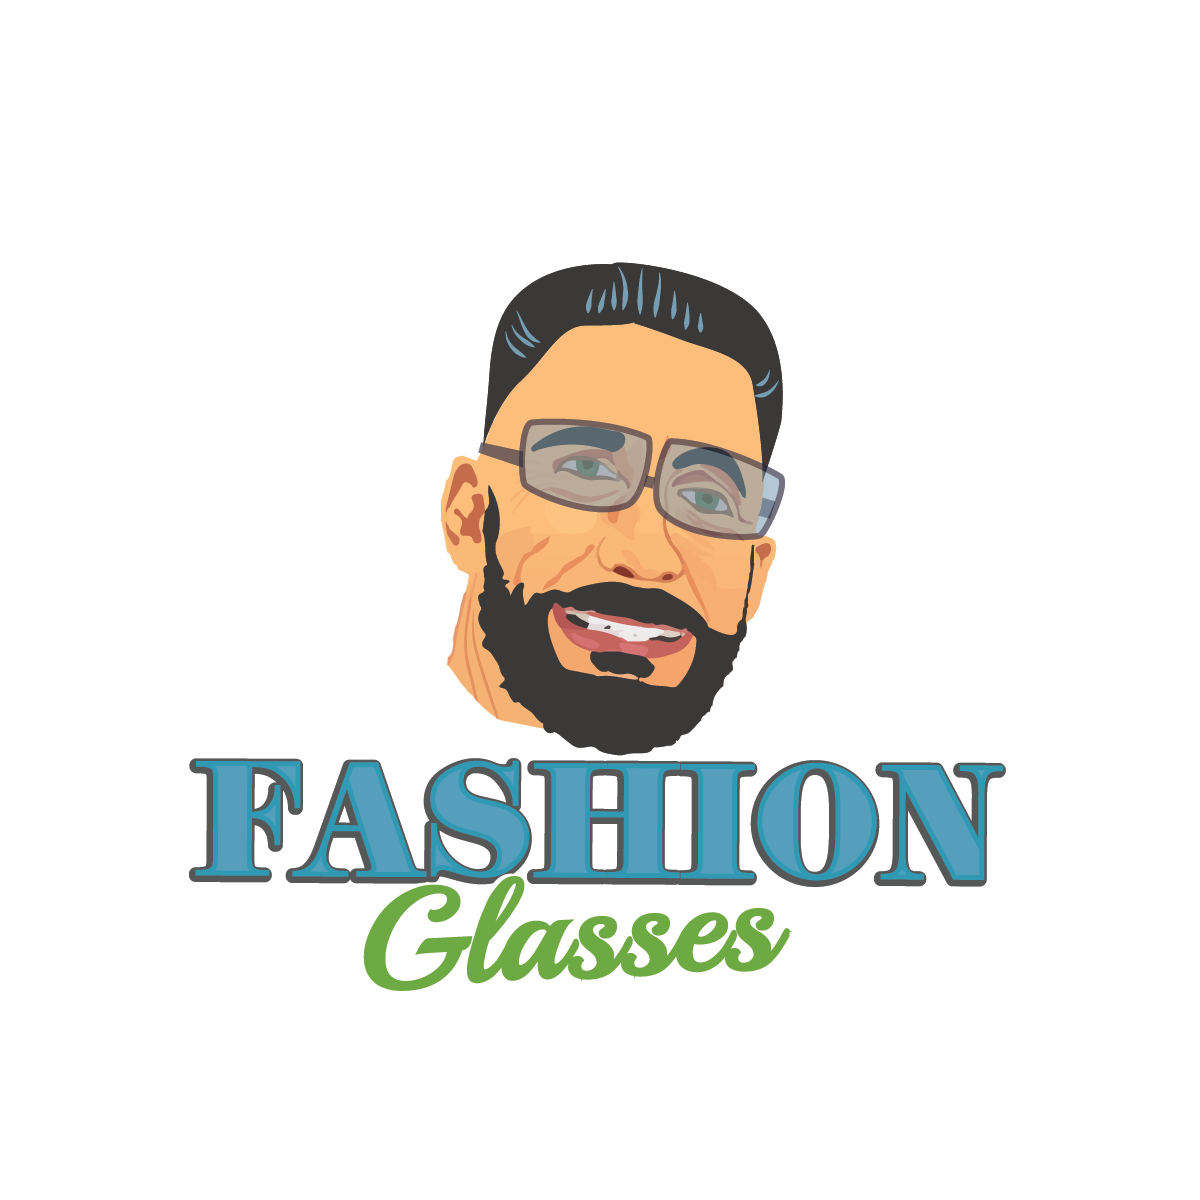 Fashion Glasses Logo Glasses Logo Glasses Fashion Logo Design